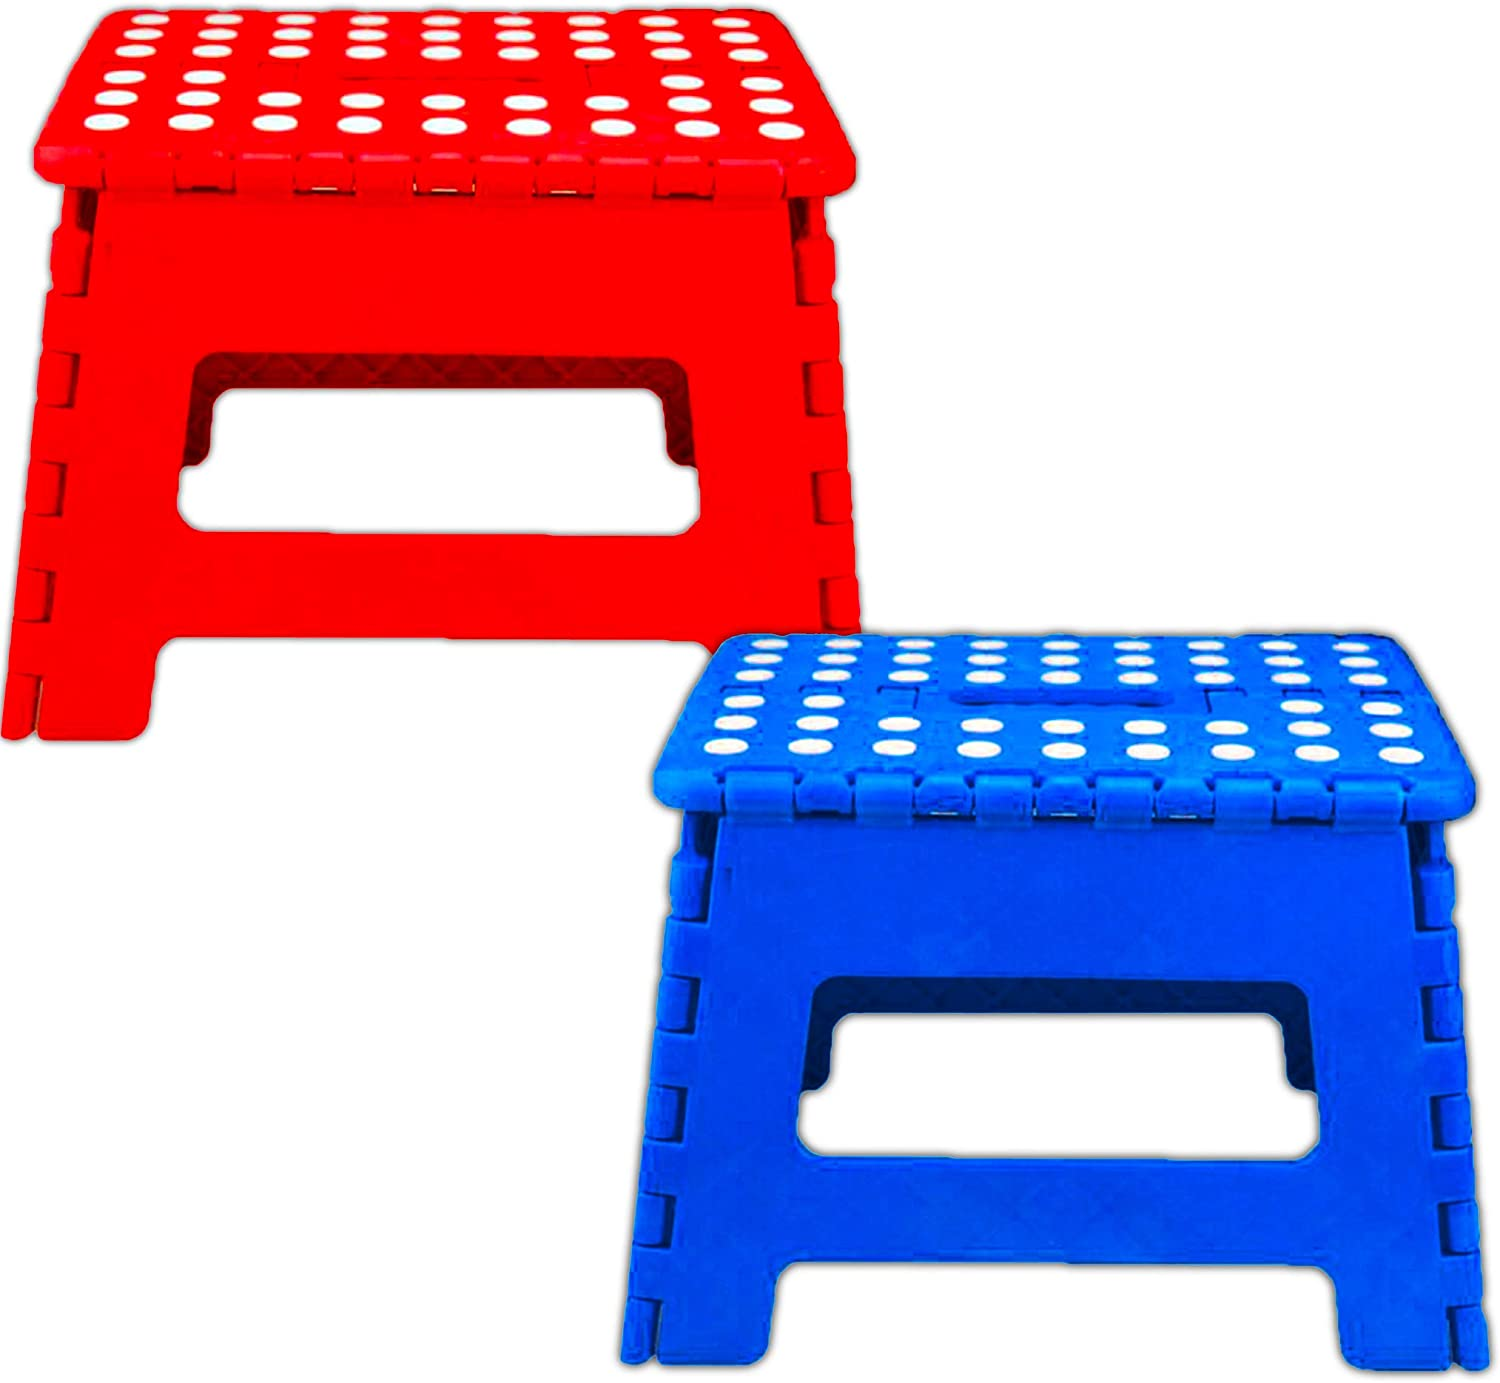 Heavy Duty Folding Step Stool 2 Collapsible Stepping Stool Momentum Brands Folding Step Stools for Adults Kids ~ 2 Pack Folding Step Stool 11 Inch High